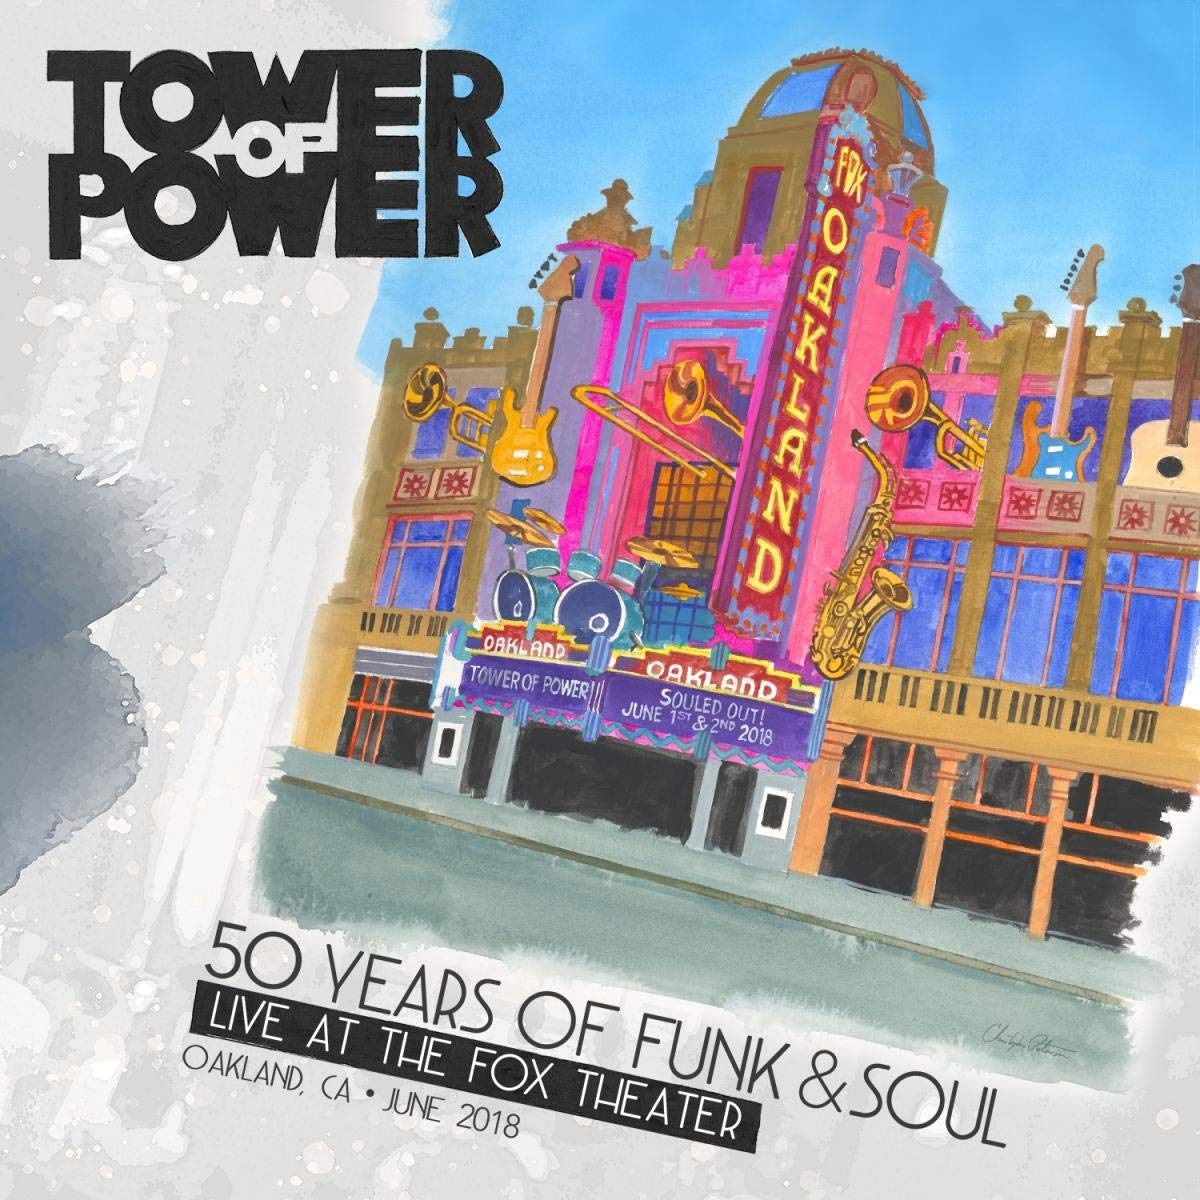 Tower Of Power - 50 Years Of Funk & Soul: Live At The Fox Theater Oakland, CA June 2018